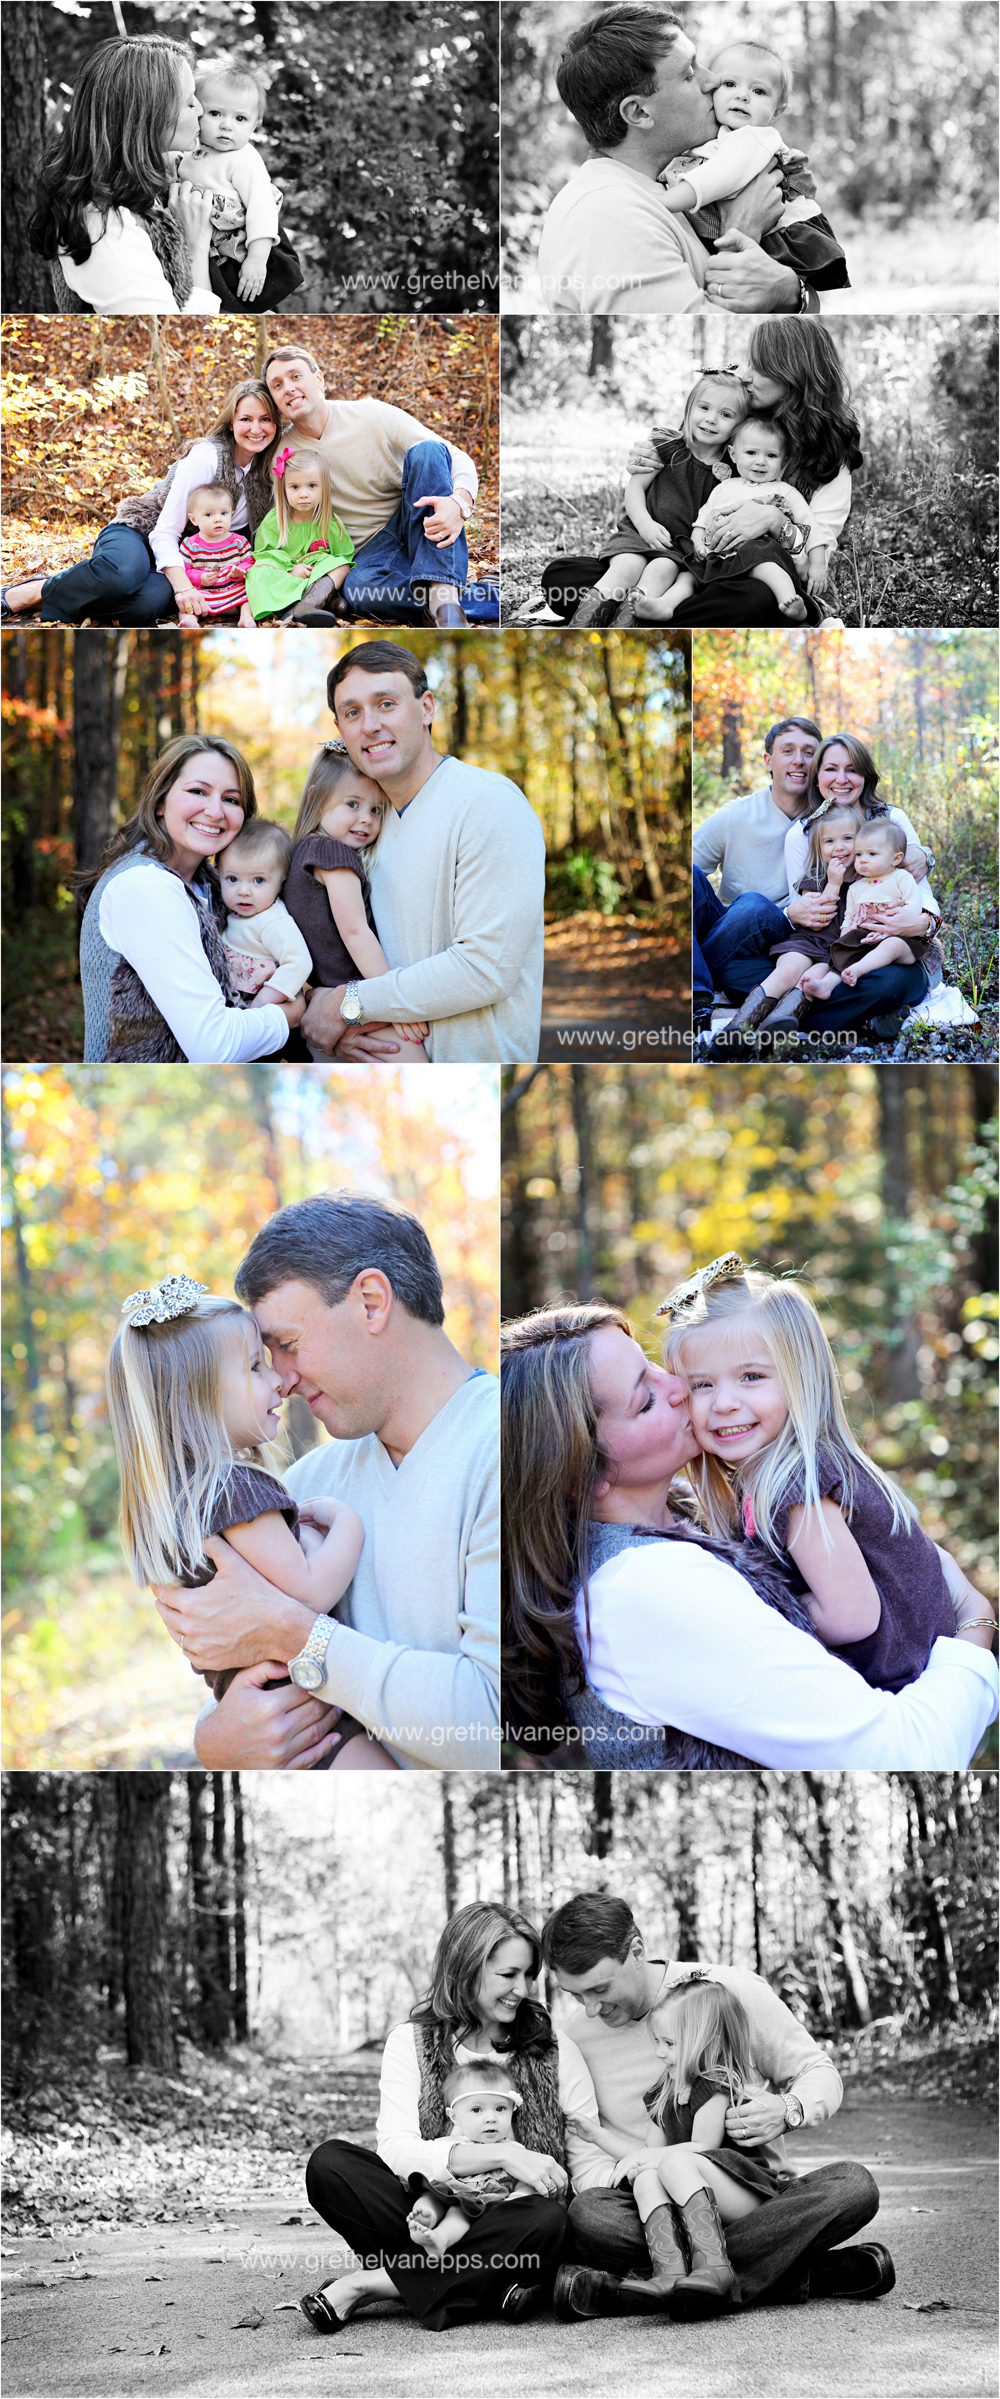 grethel single women Find grethel kentucky the single largest source of funding for the and emotional assistance for men and women who are coping with any of a variety.